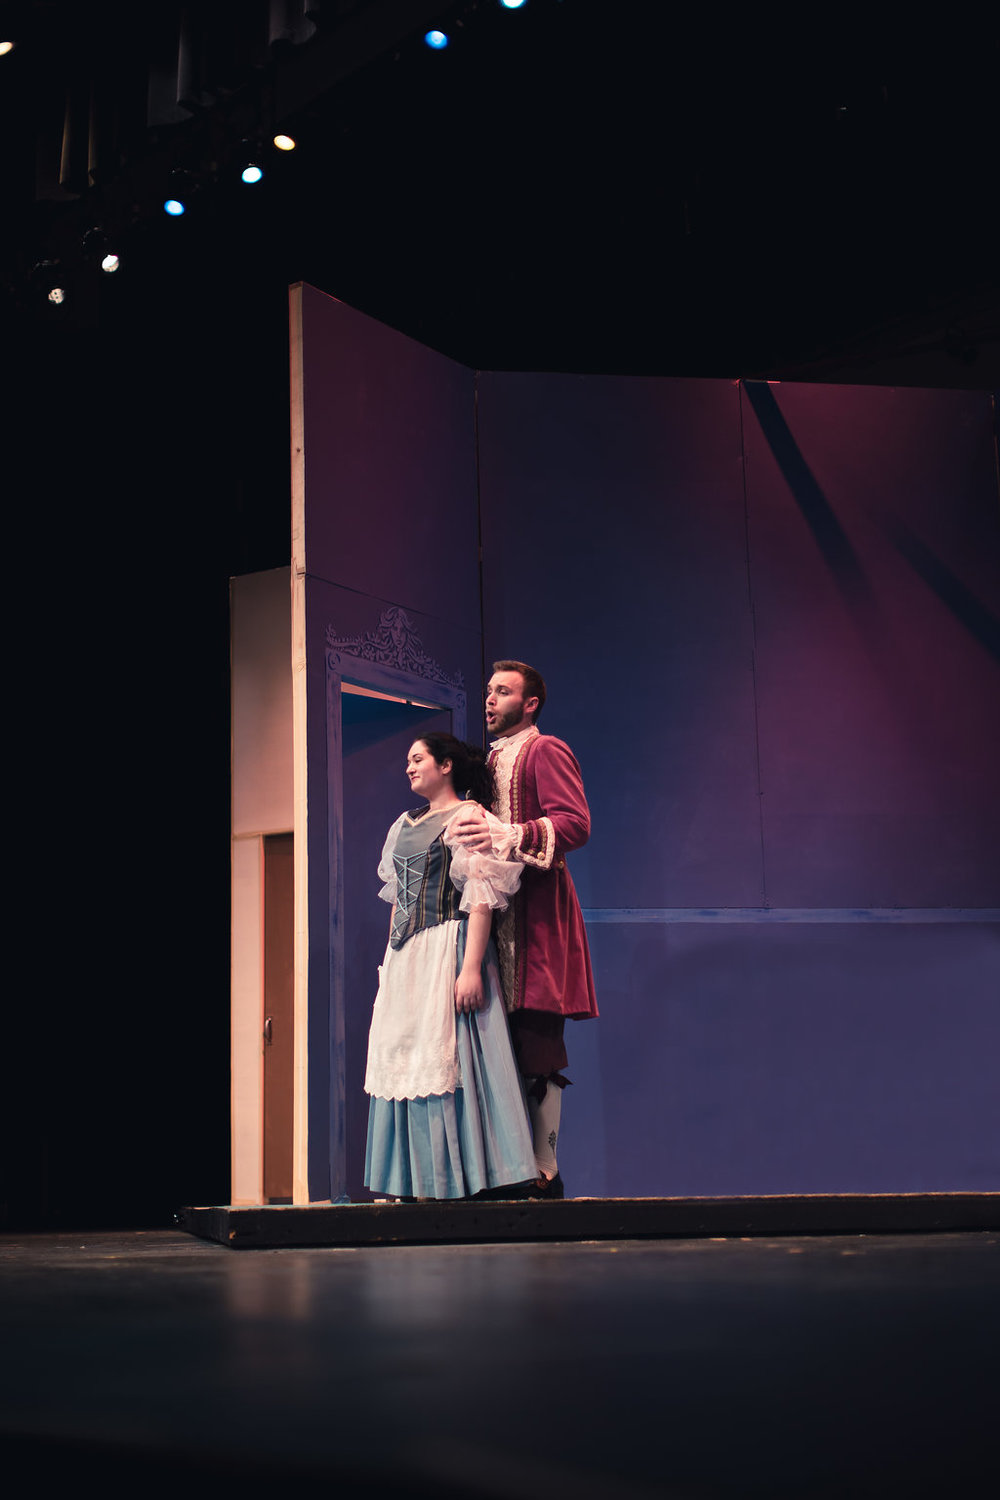 Susanna in University of California, Santa Barbara's production of  Le nozze di Figaro , 2018 Photo by Zachary Mendez